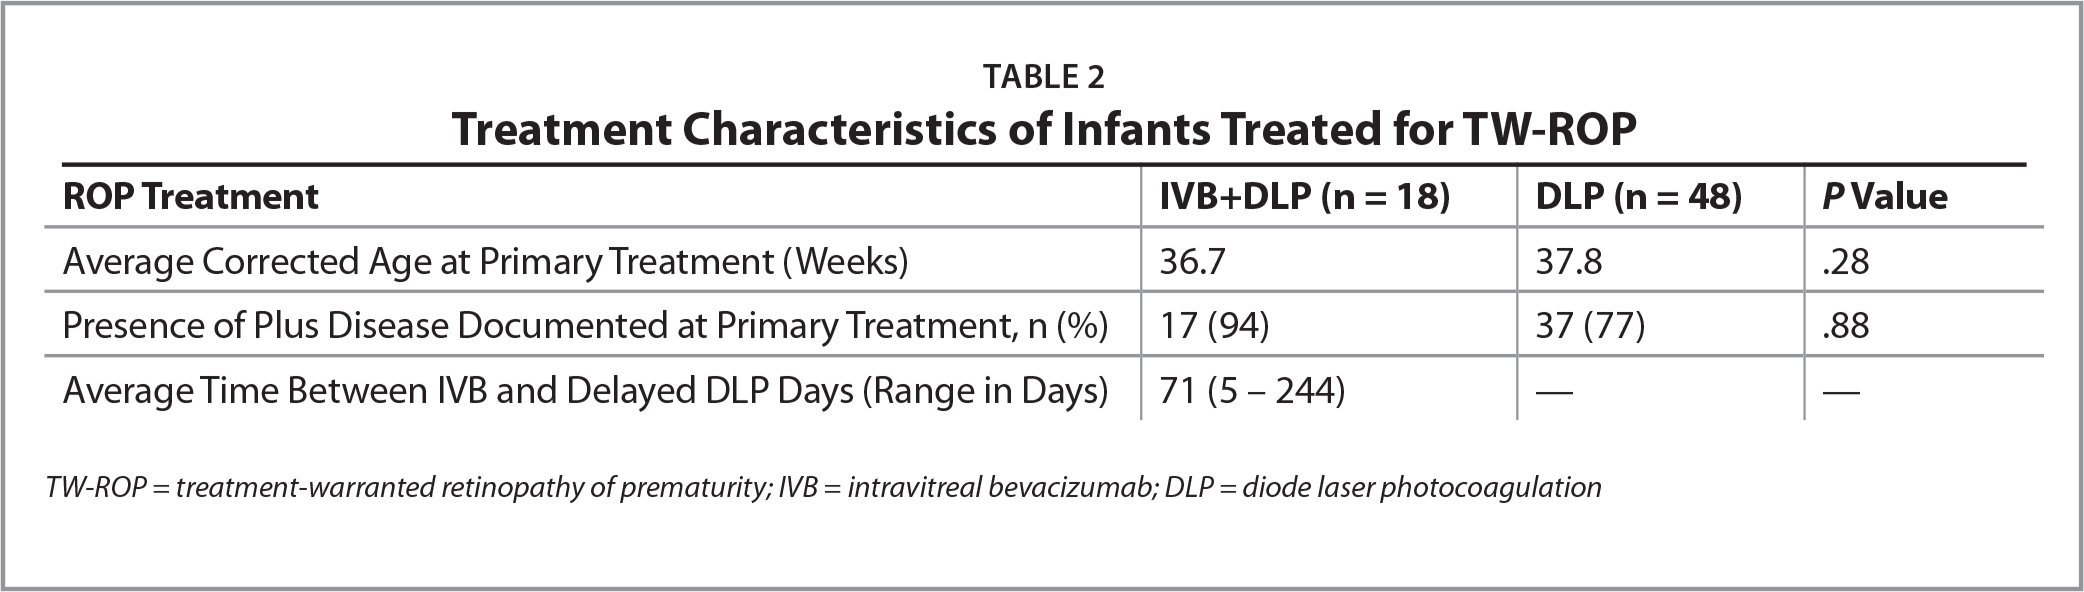 Treatment Characteristics of Infants Treated for TW-ROP